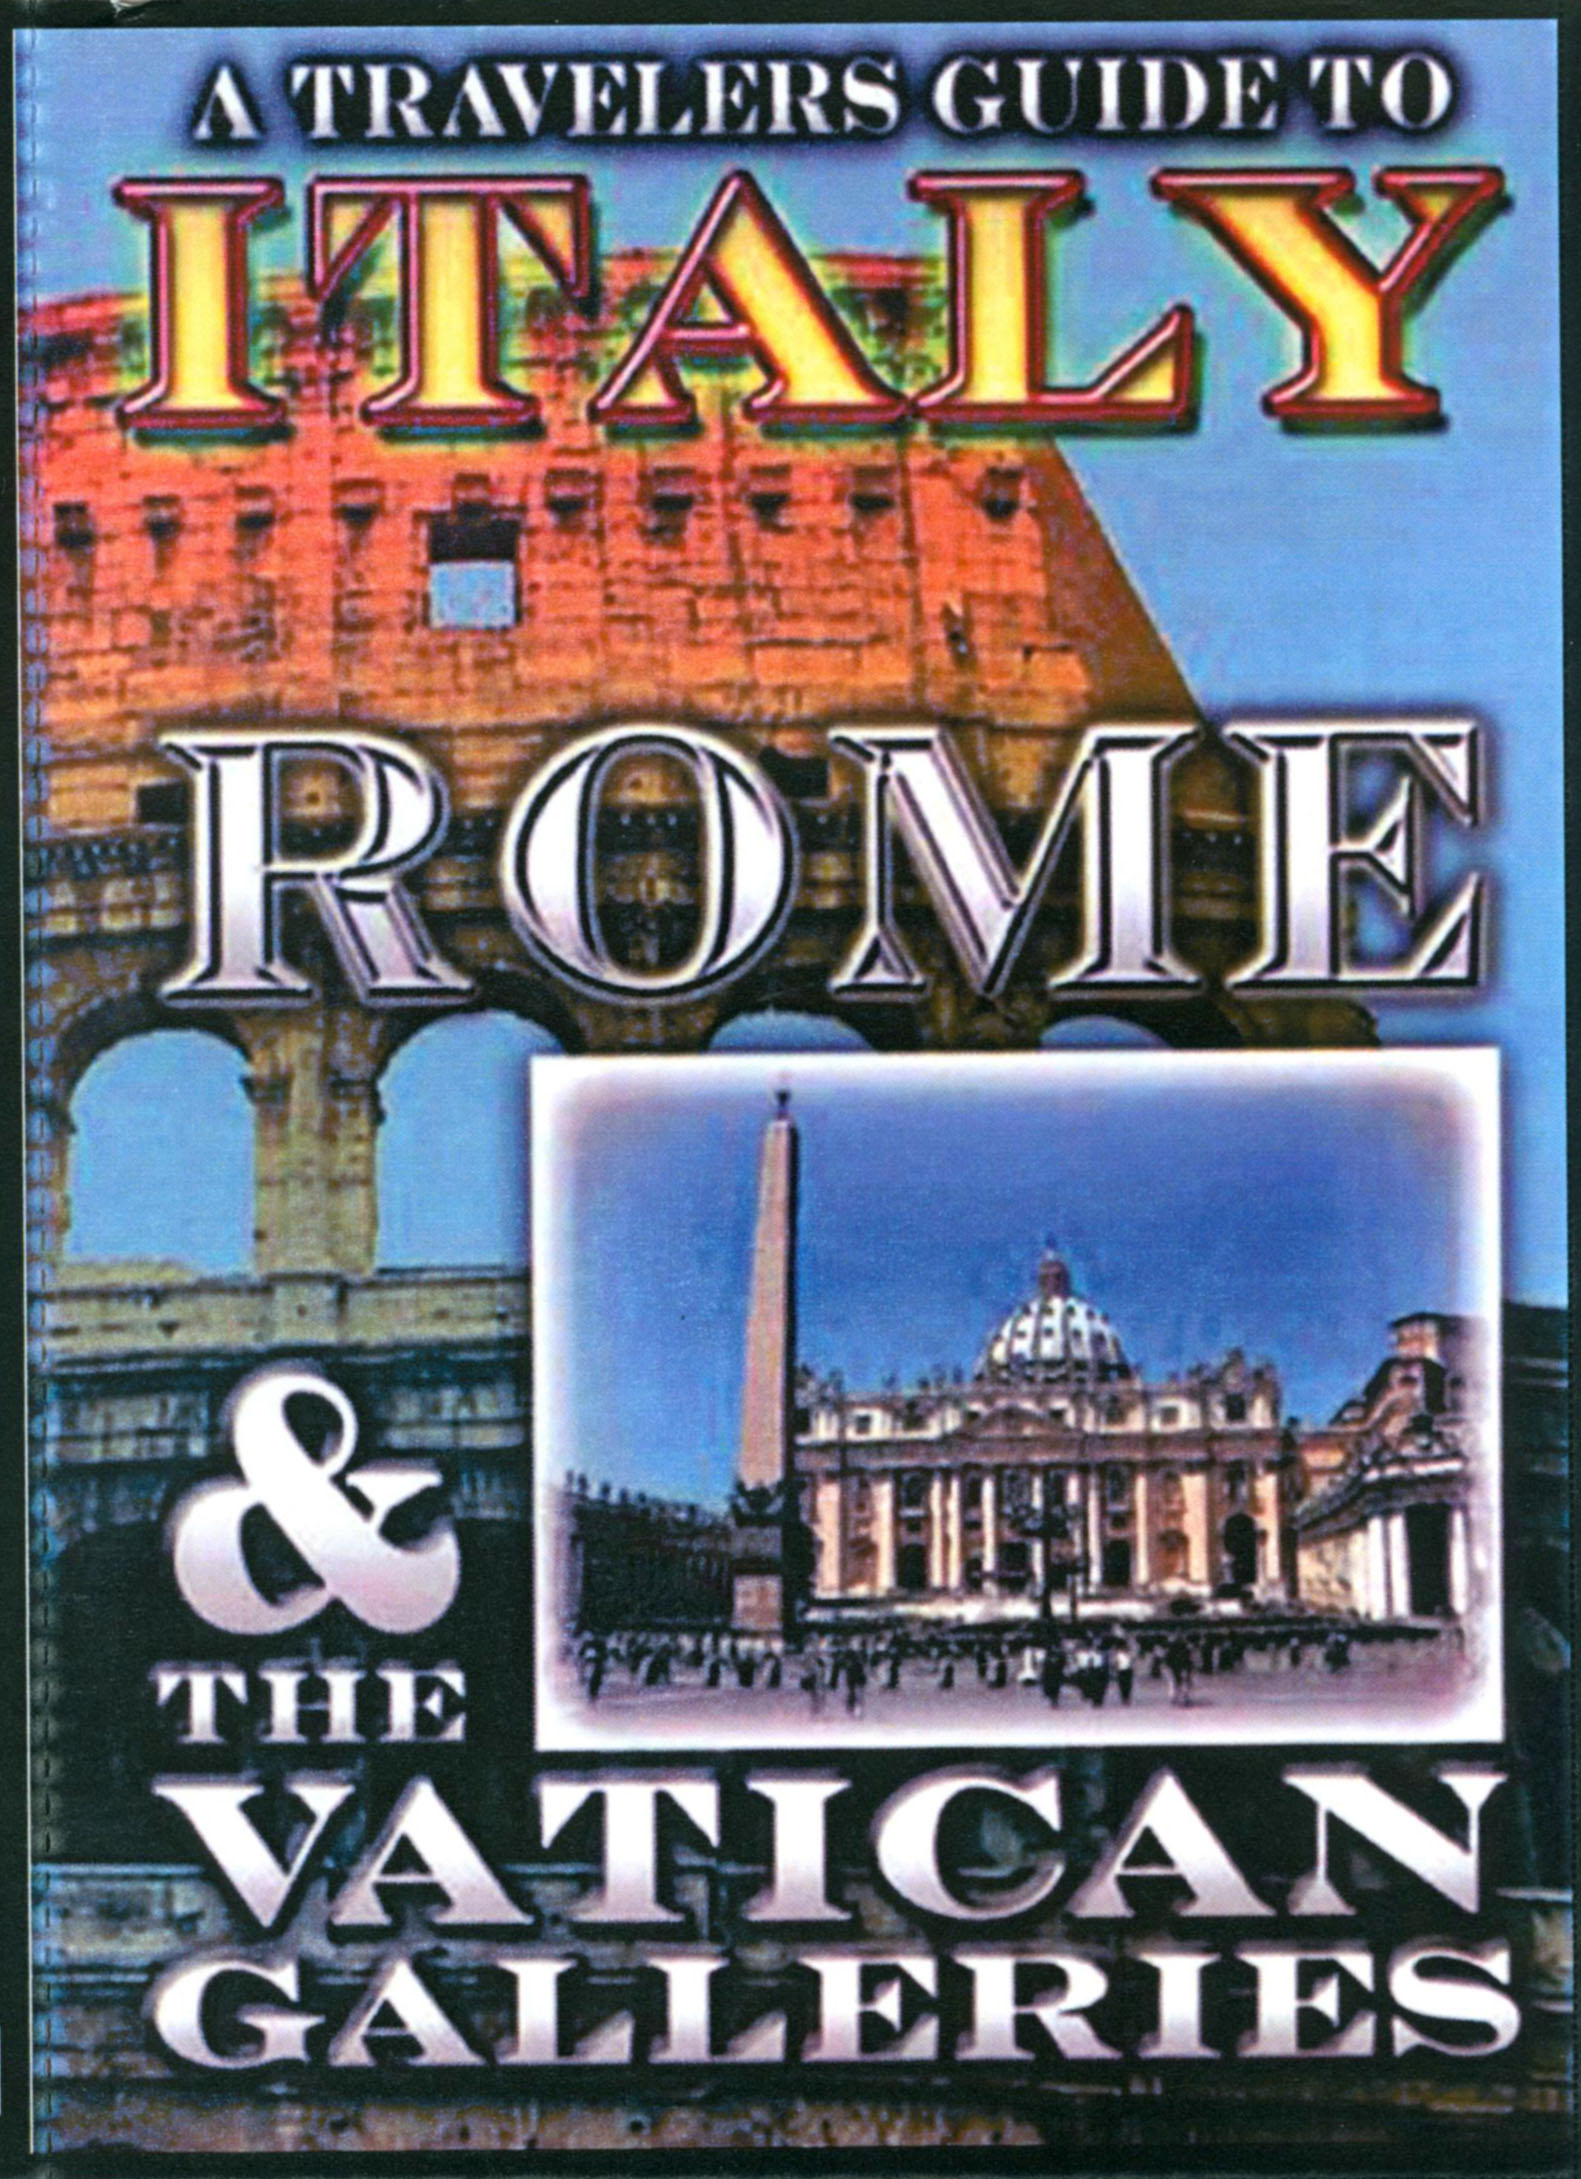 A Travelers Guide To Italy: Rome & the Vatican Galleries